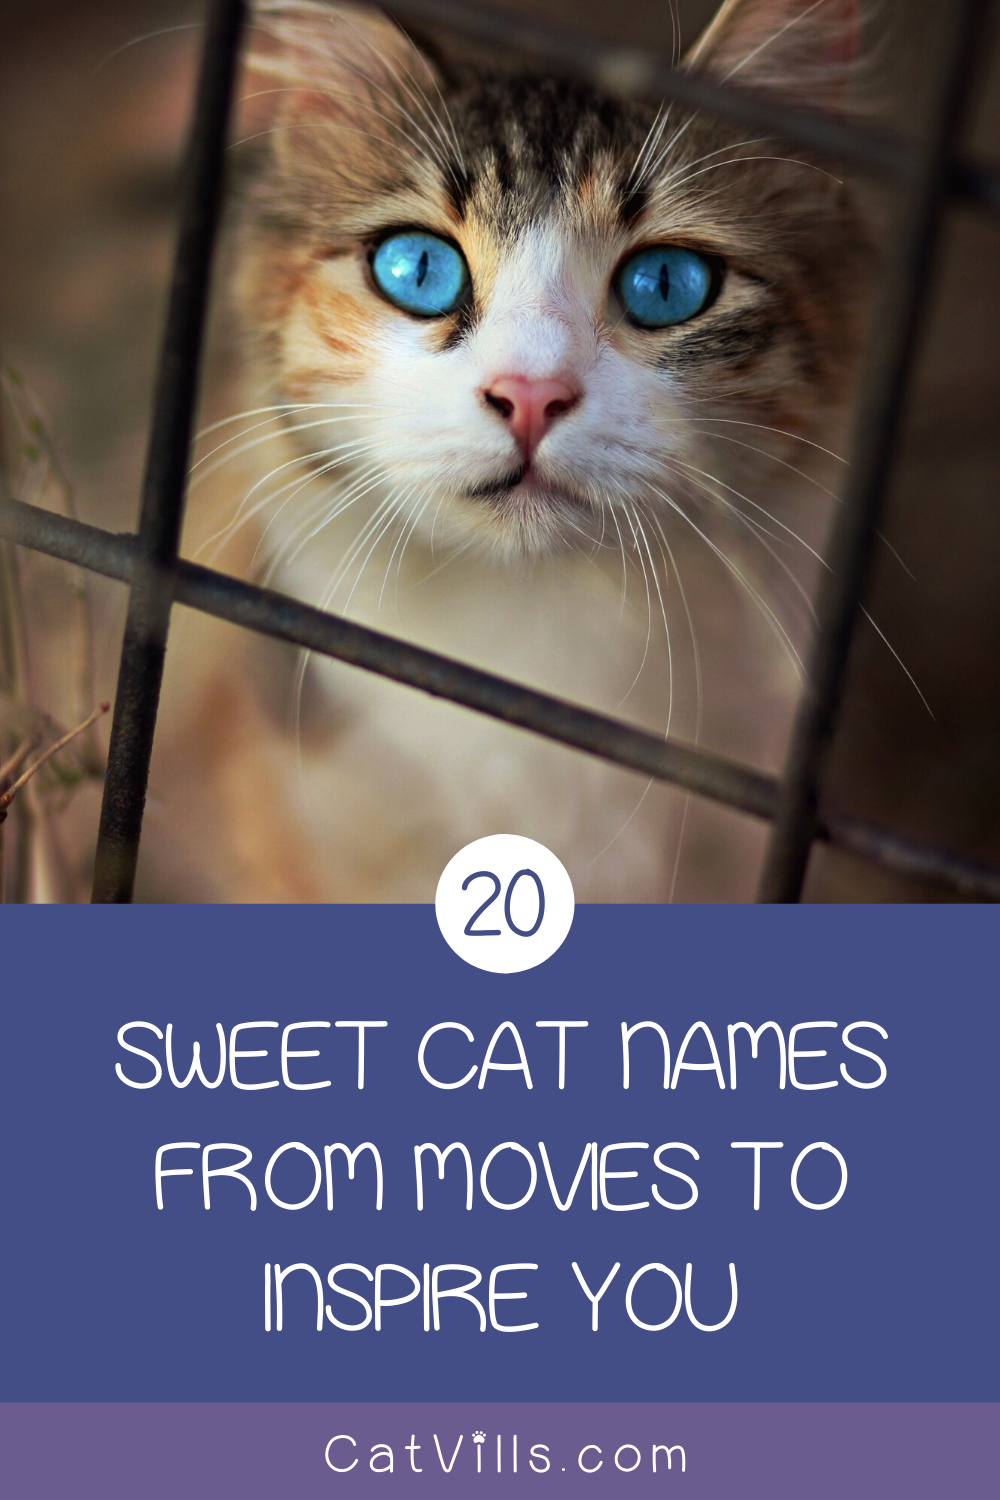 20 Sweet Cat Names From Movies To Inspire You In 2020 Cat Names Cute Cat Names Girl Cat Names